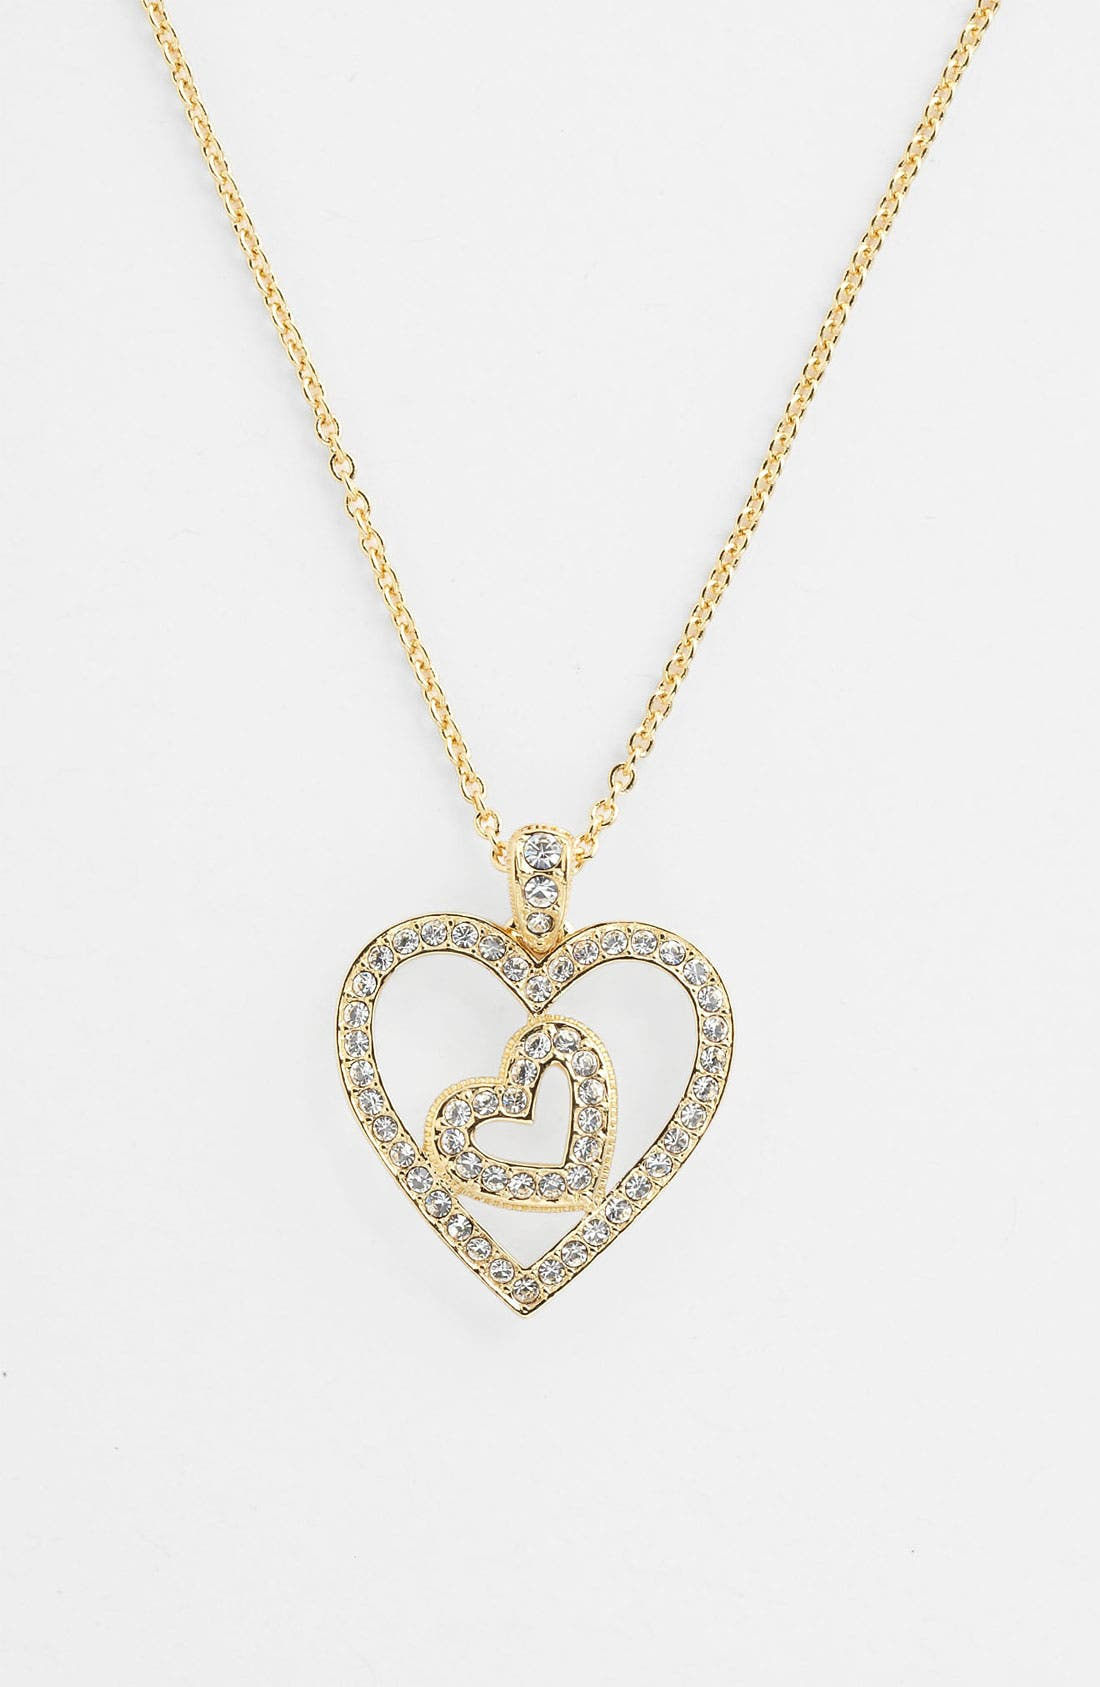 Alternate Image 1 Selected - Nadri Boxed Heart Pendant Necklace (Nordstrom Exclusive)